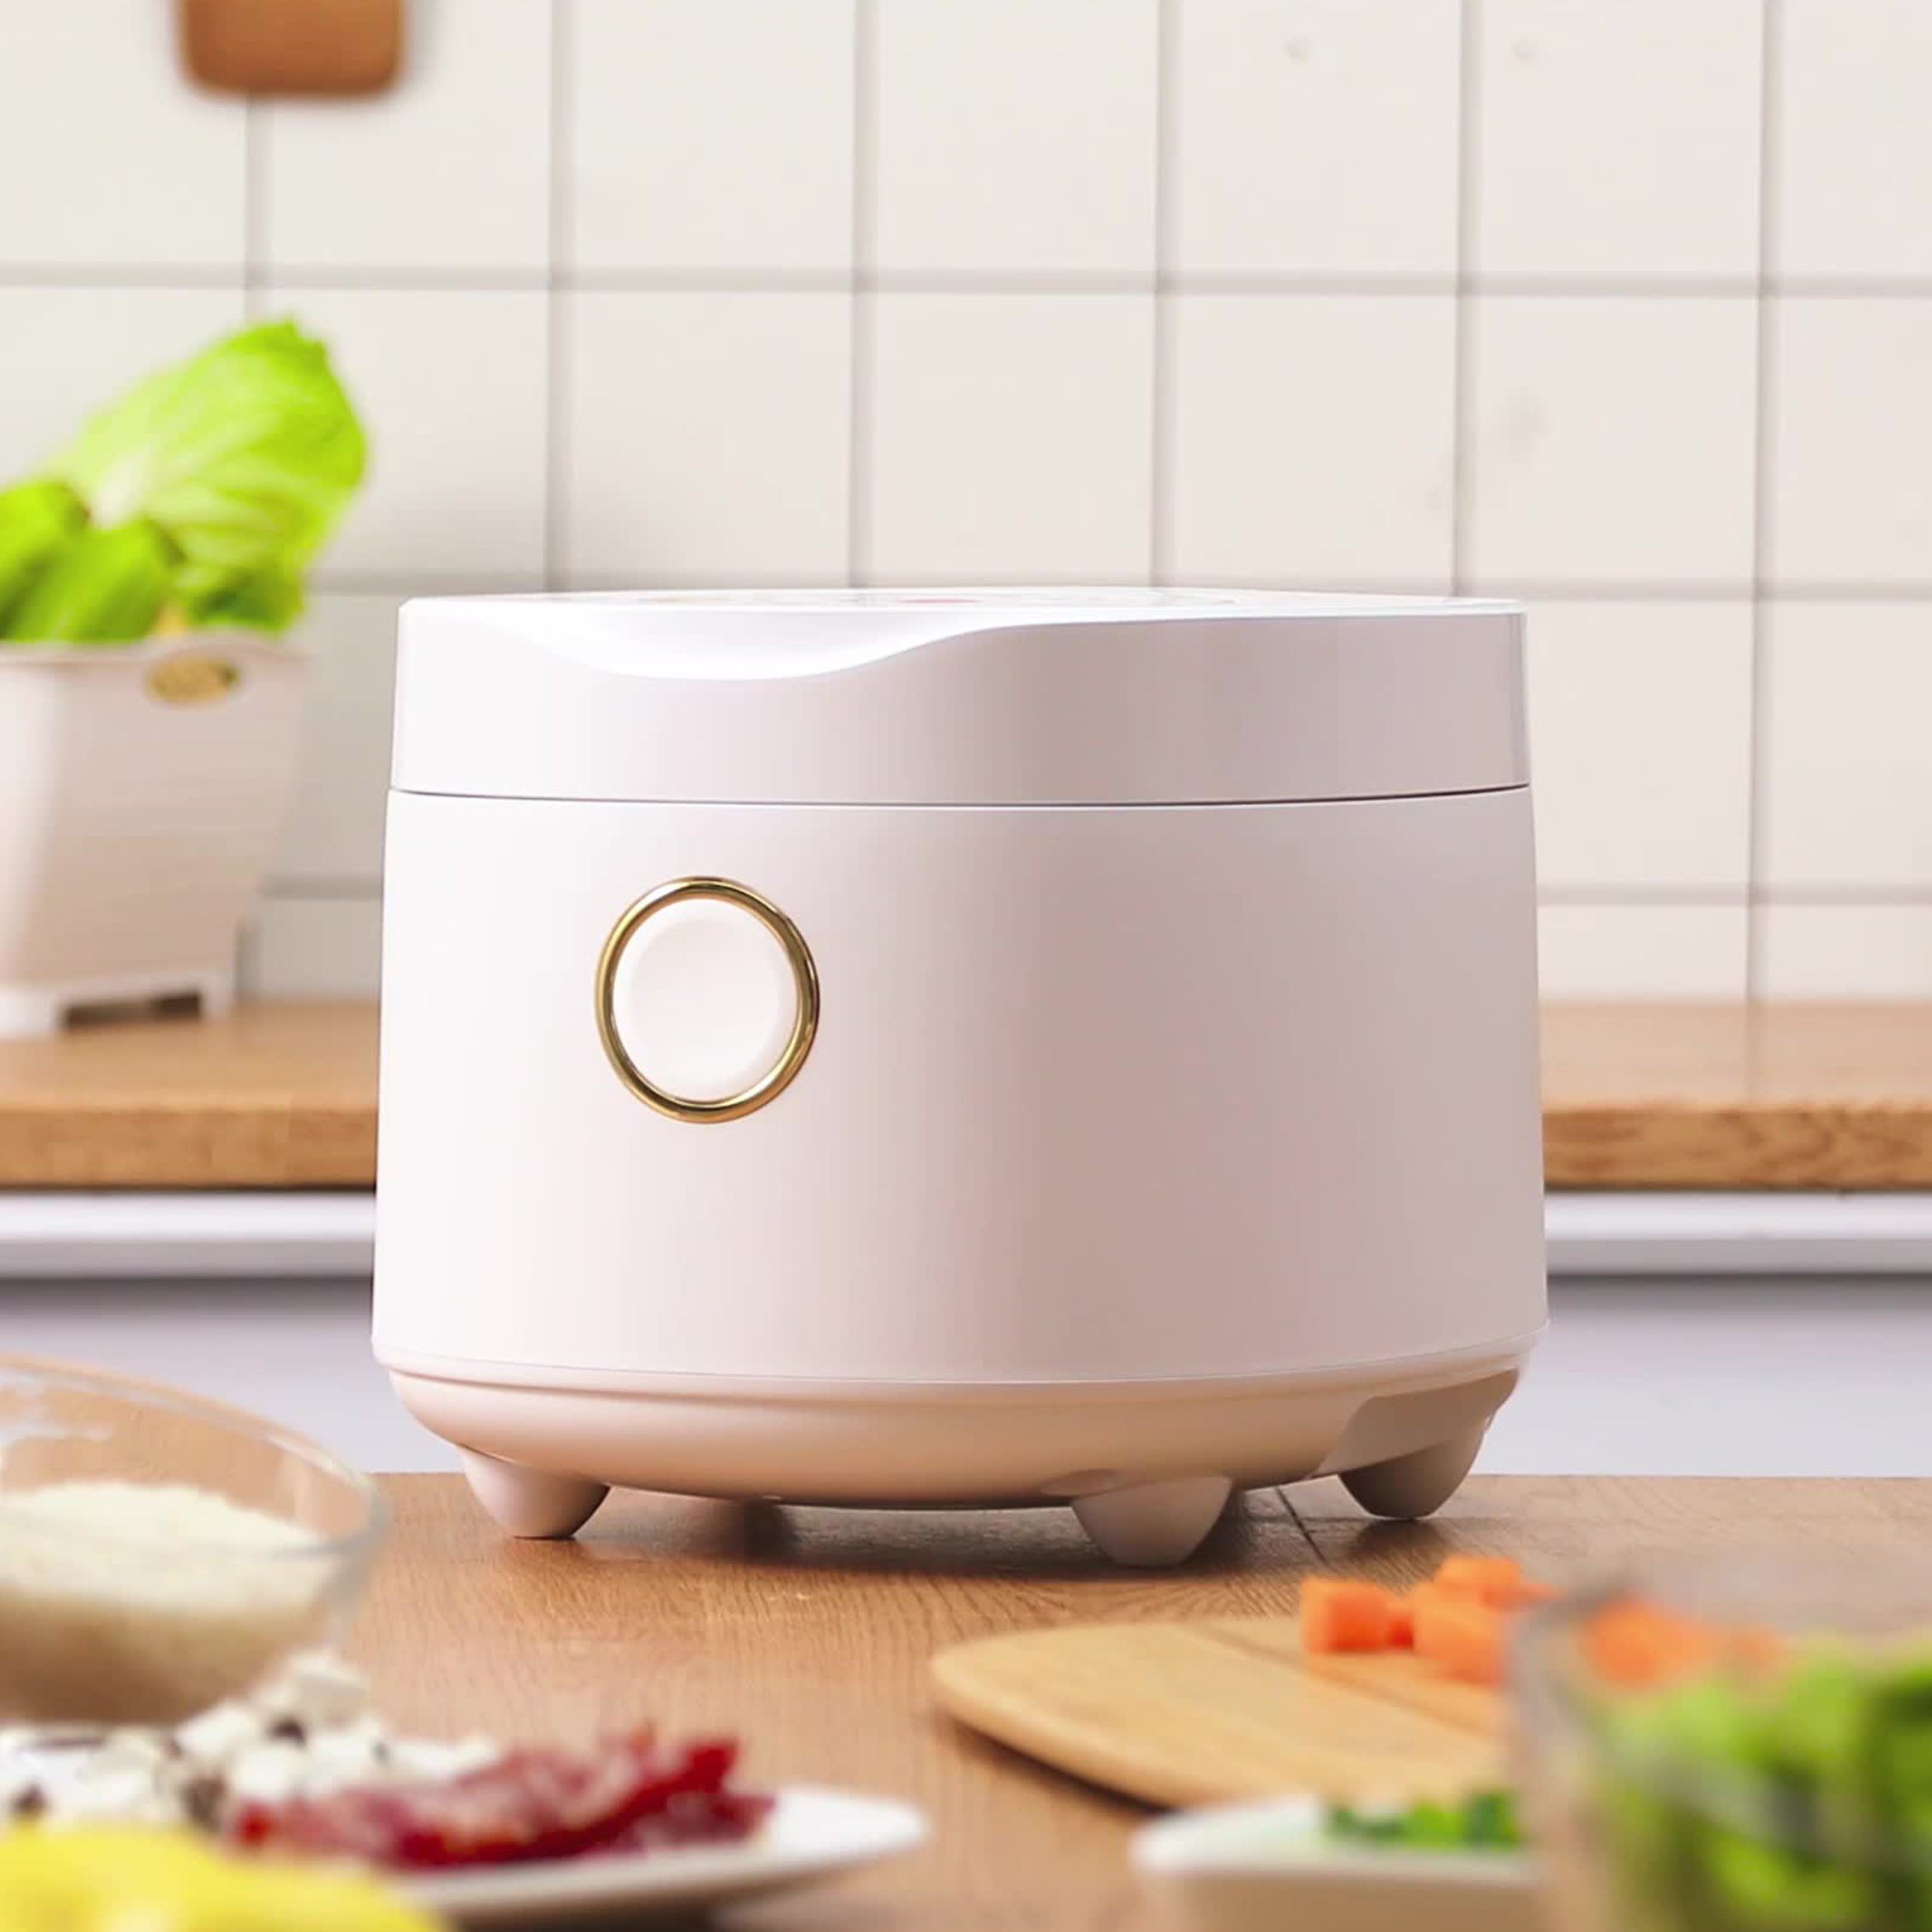 Aux / aux vk-301f2 multi function household intelligent reservation 2-3-4 small mini rice cooker 3L